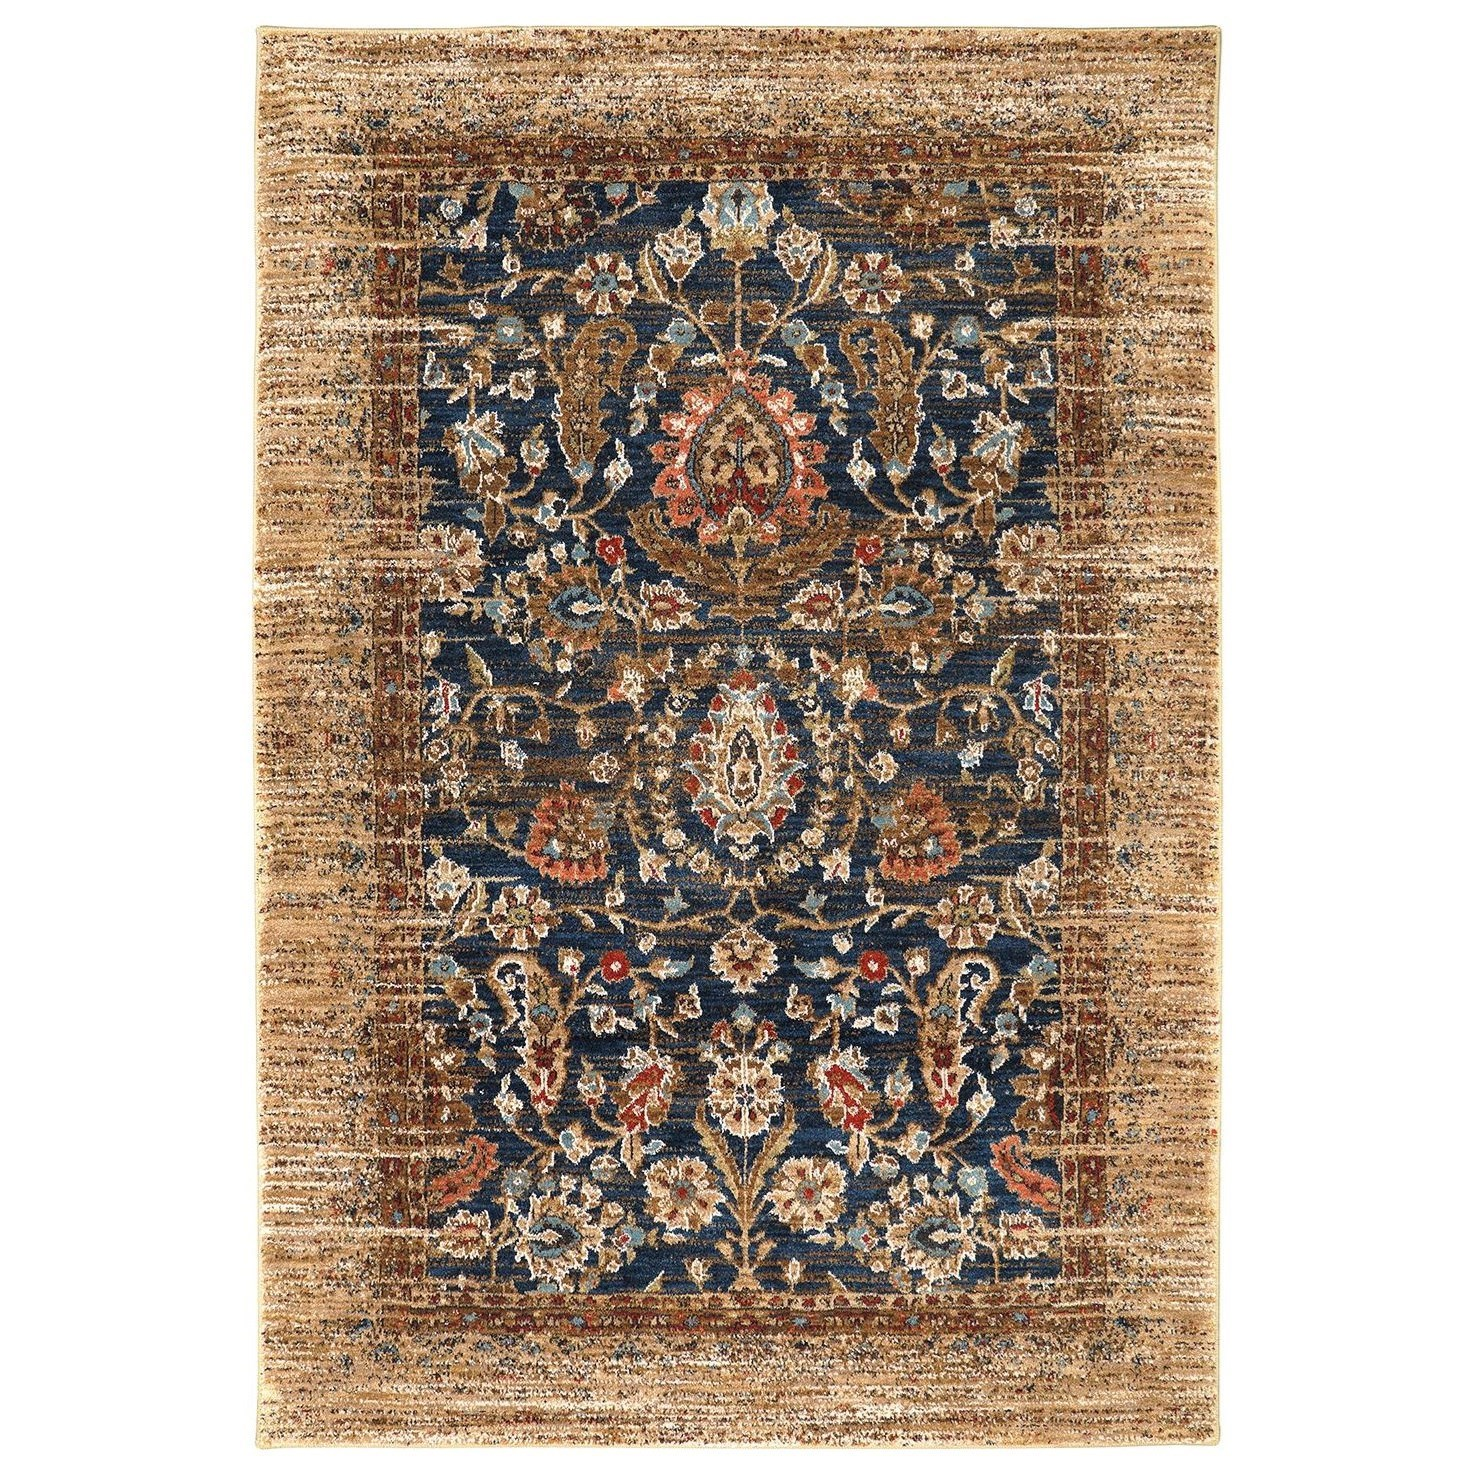 Spice Market 9'6x12'11 Charax Gold Rug by Karastan Rugs at Darvin Furniture